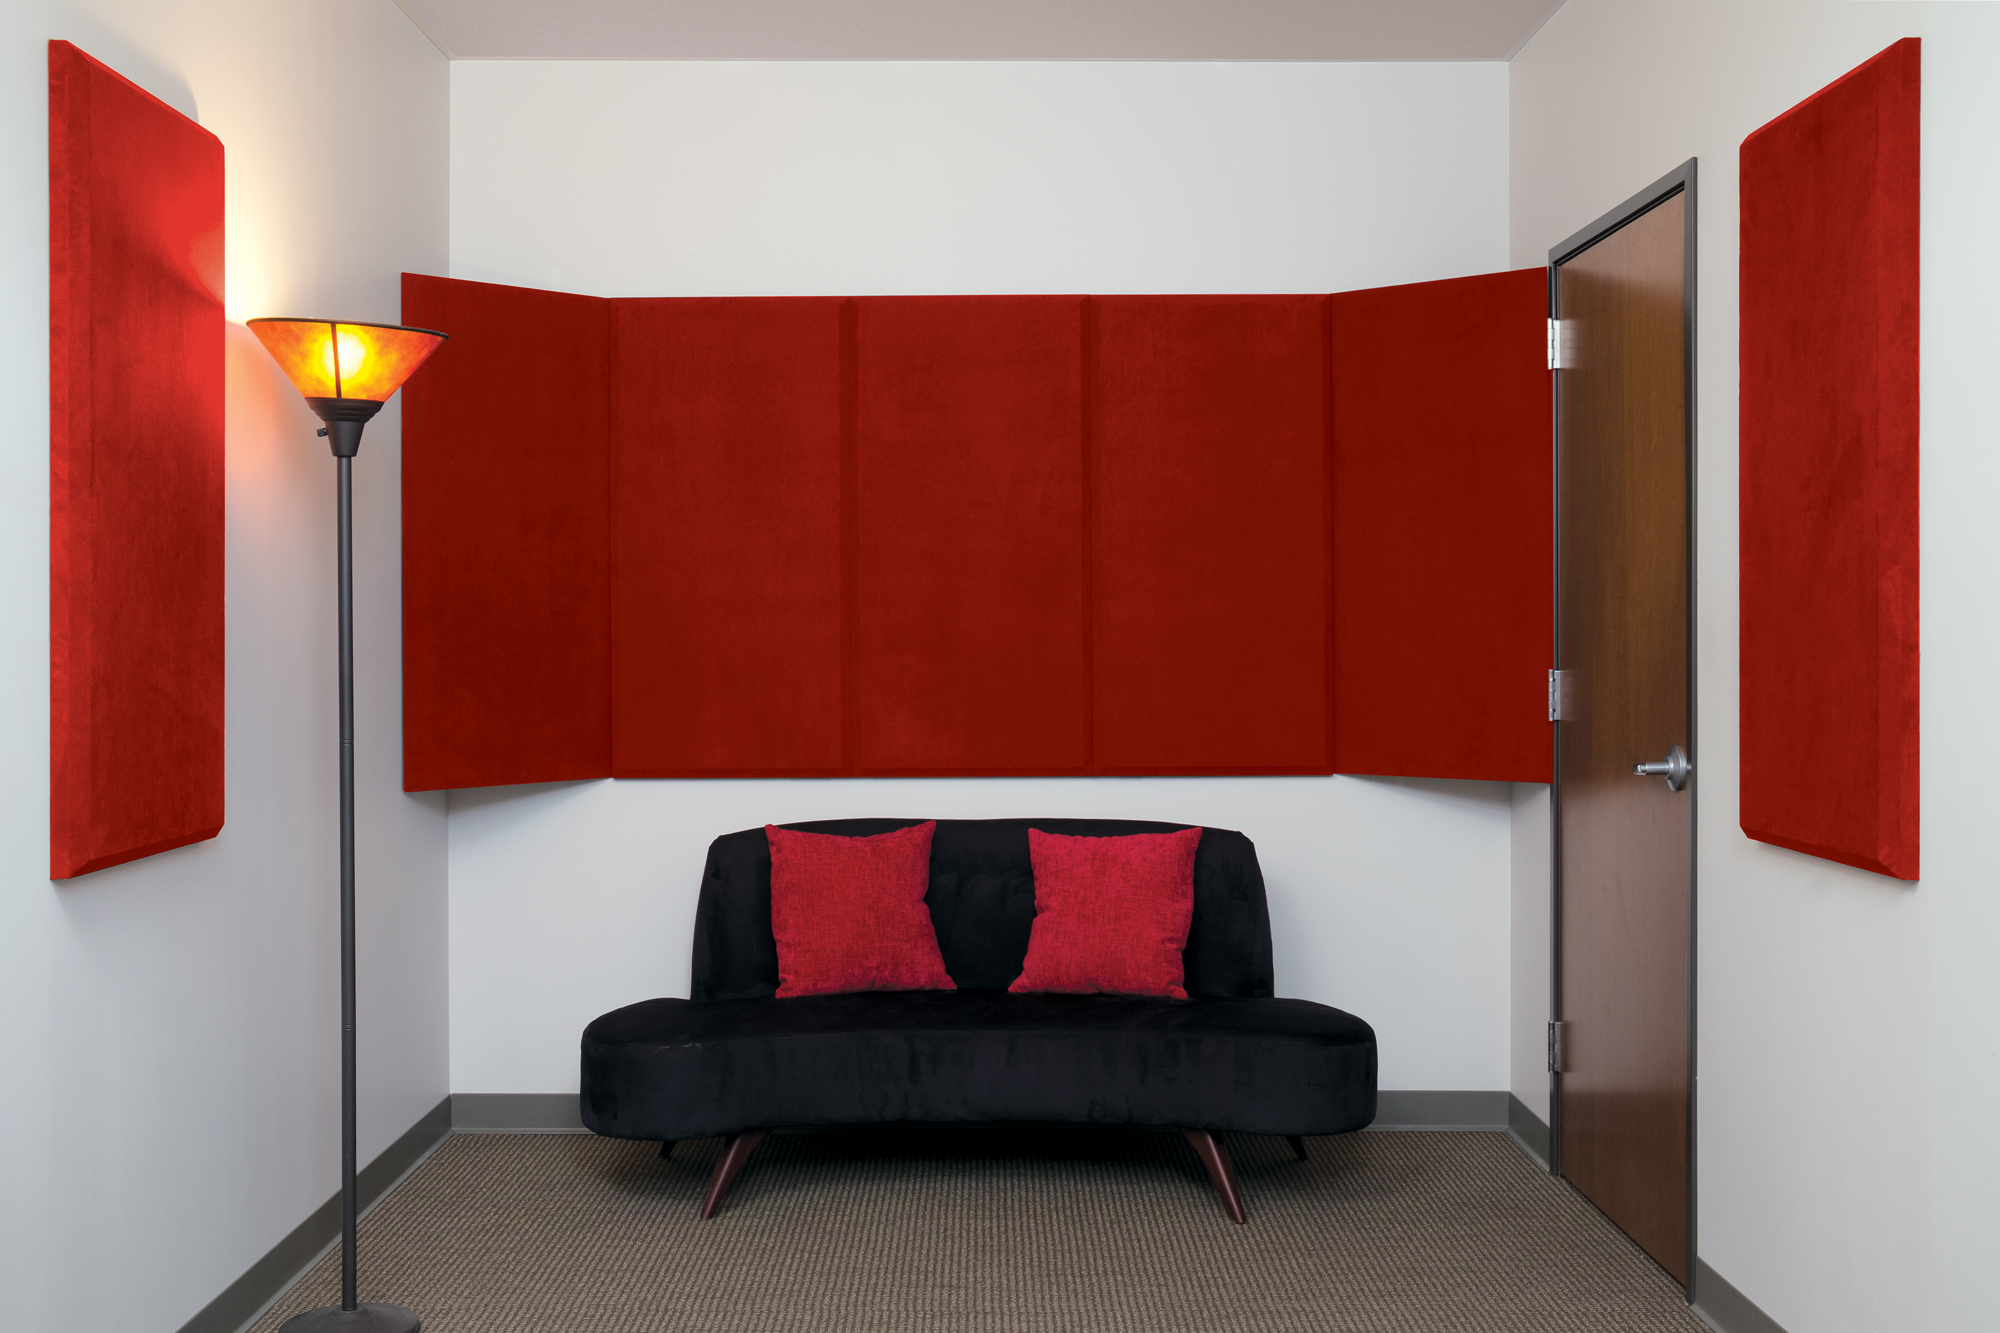 2'x4' ProPanels in SonoSuede Red Fabric